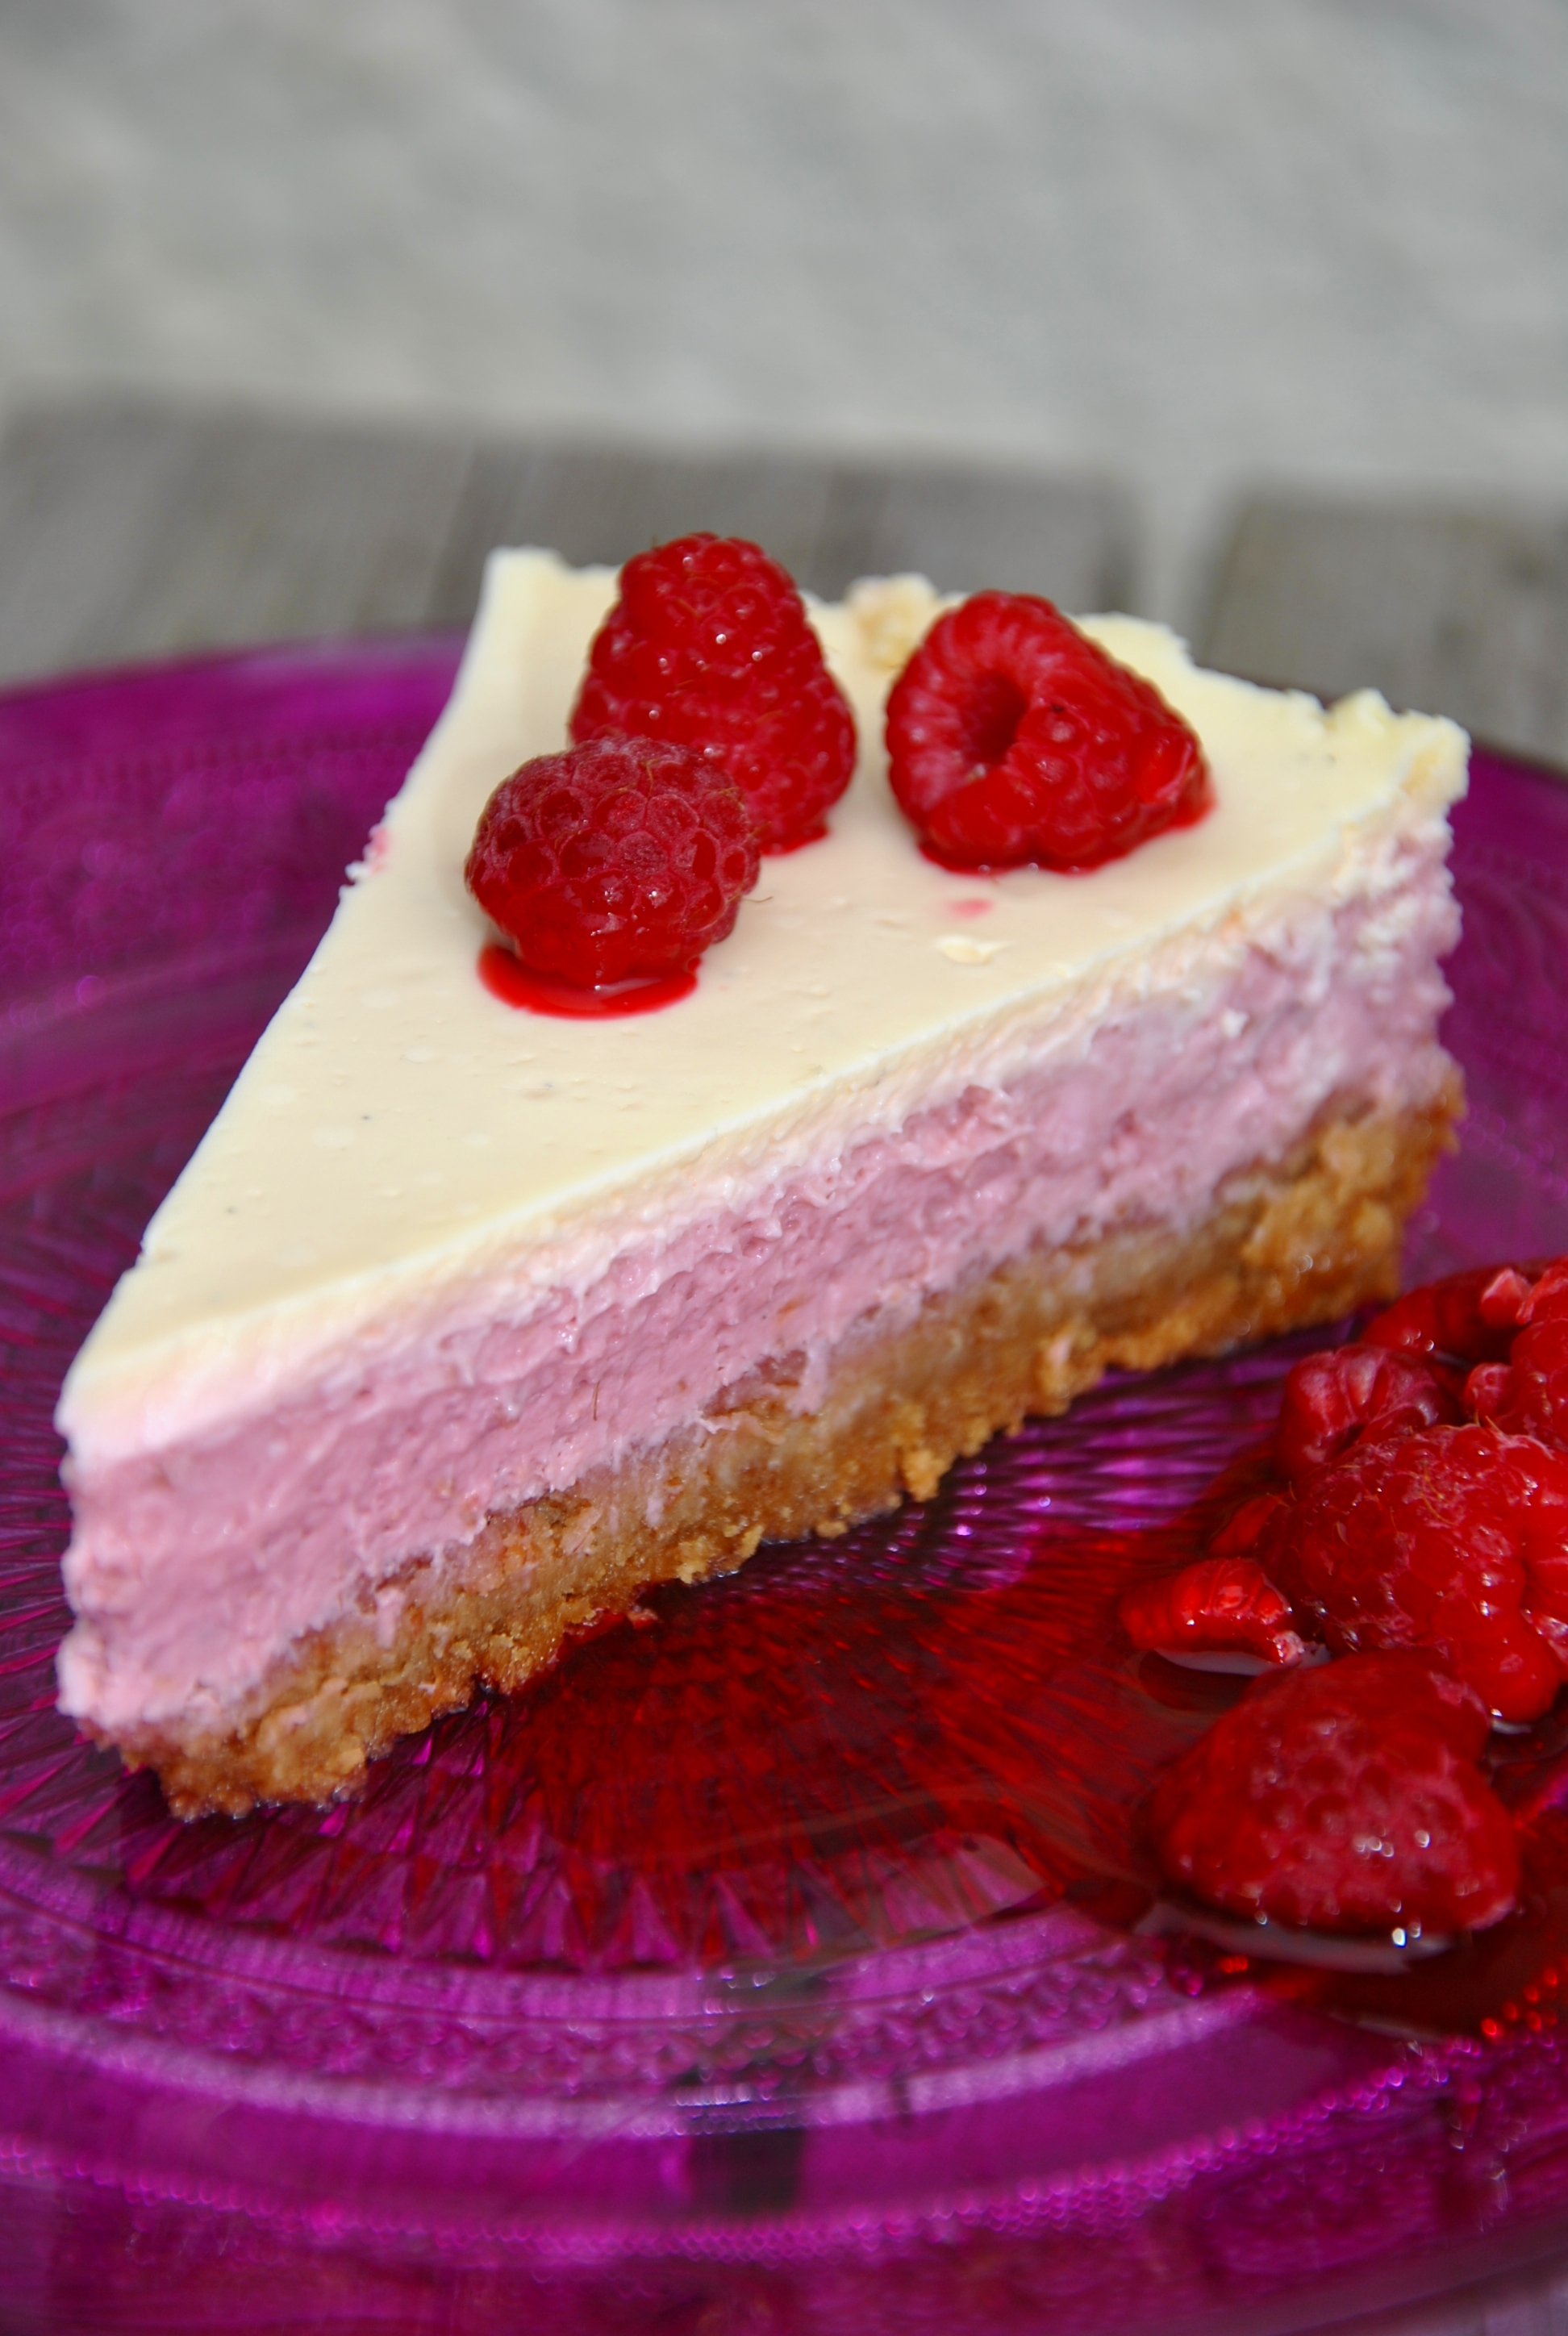 Cheesecake hallon kesella